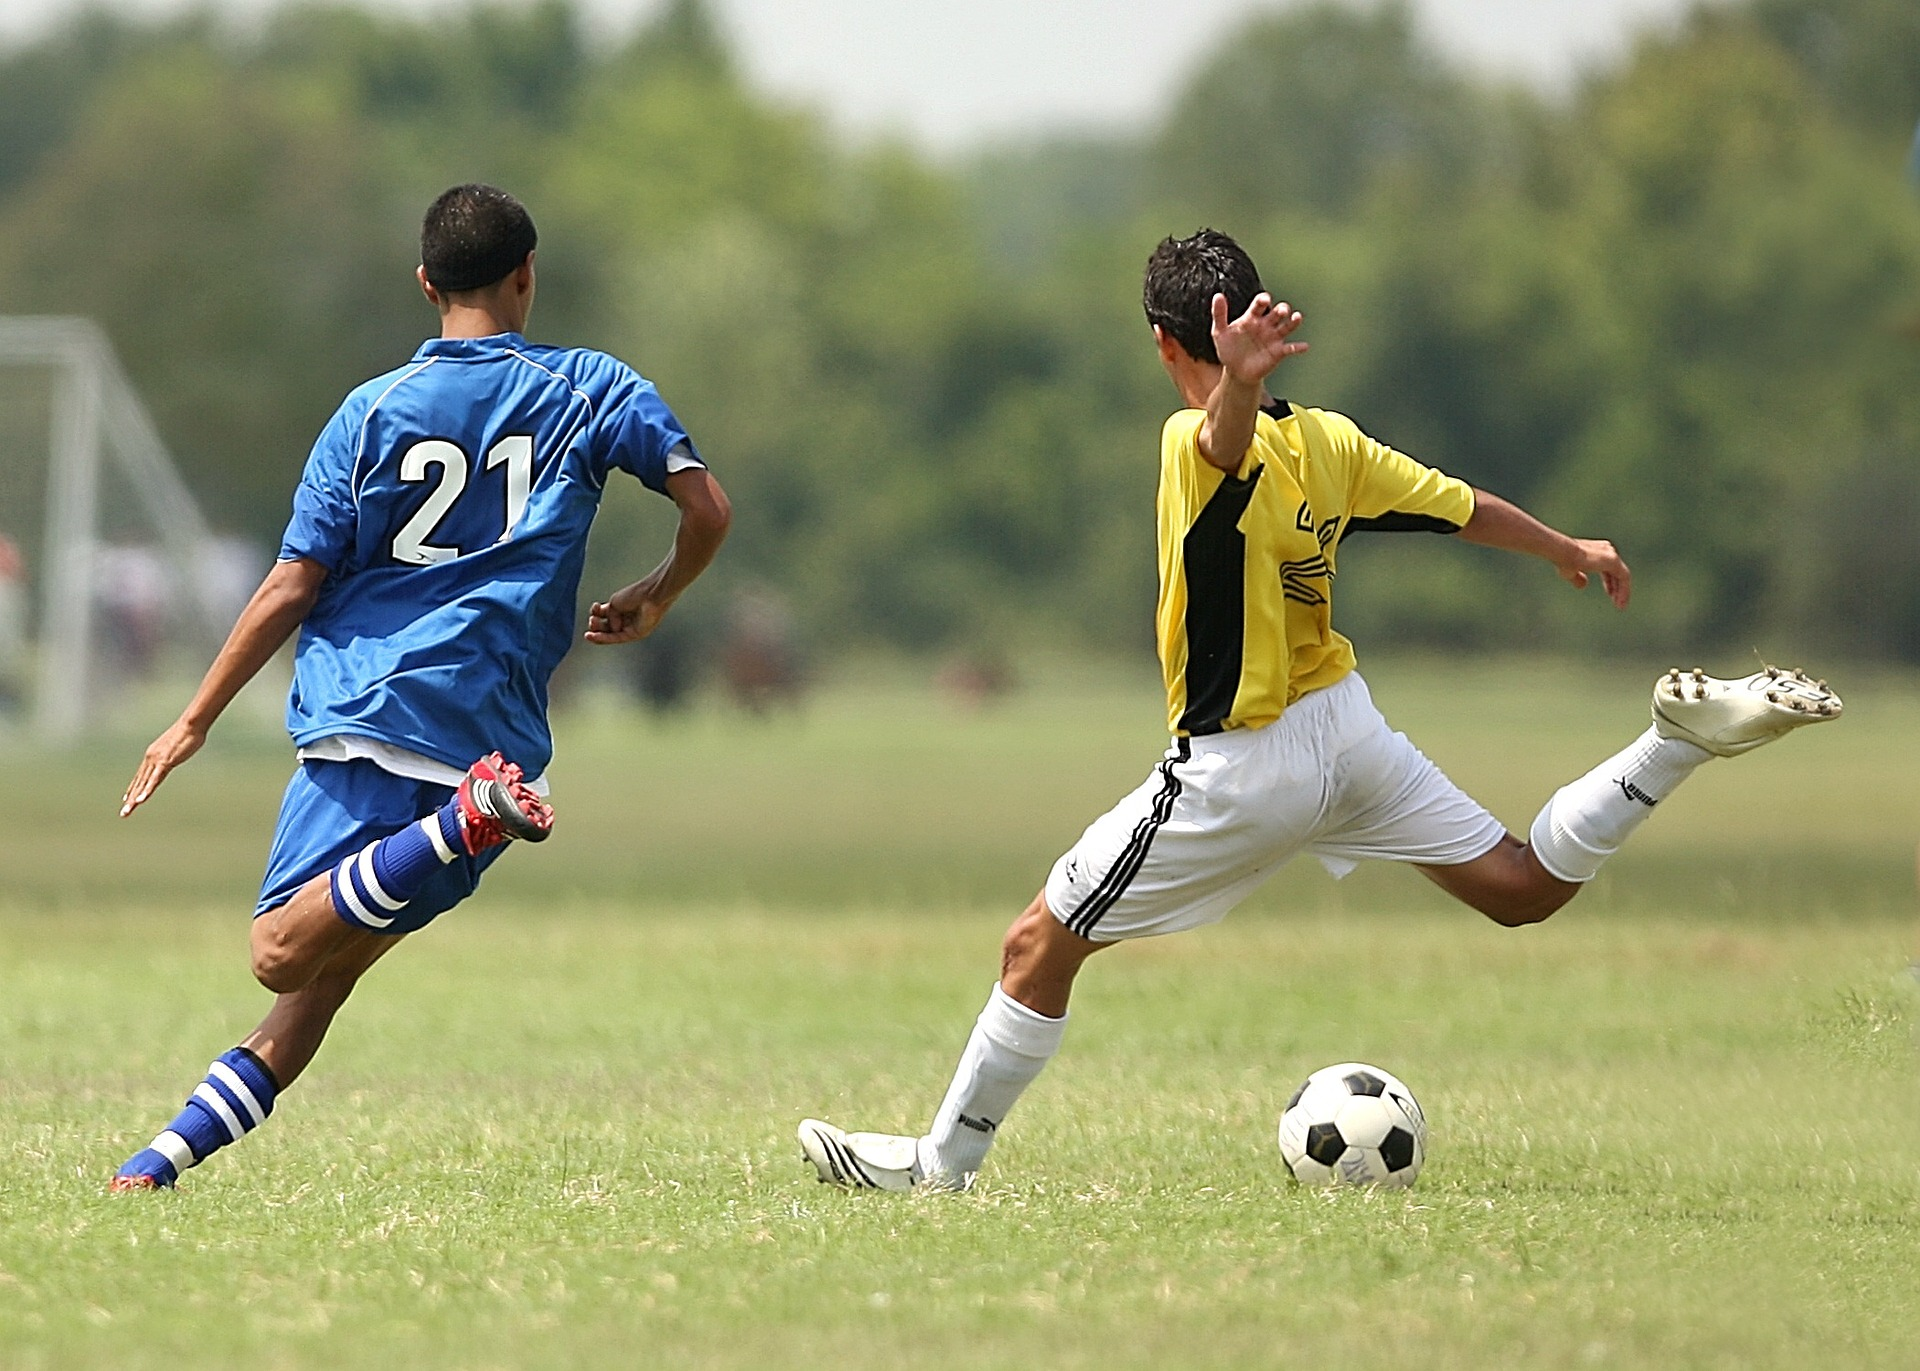 soccer 1457988 1920 - Soccer Podiatry